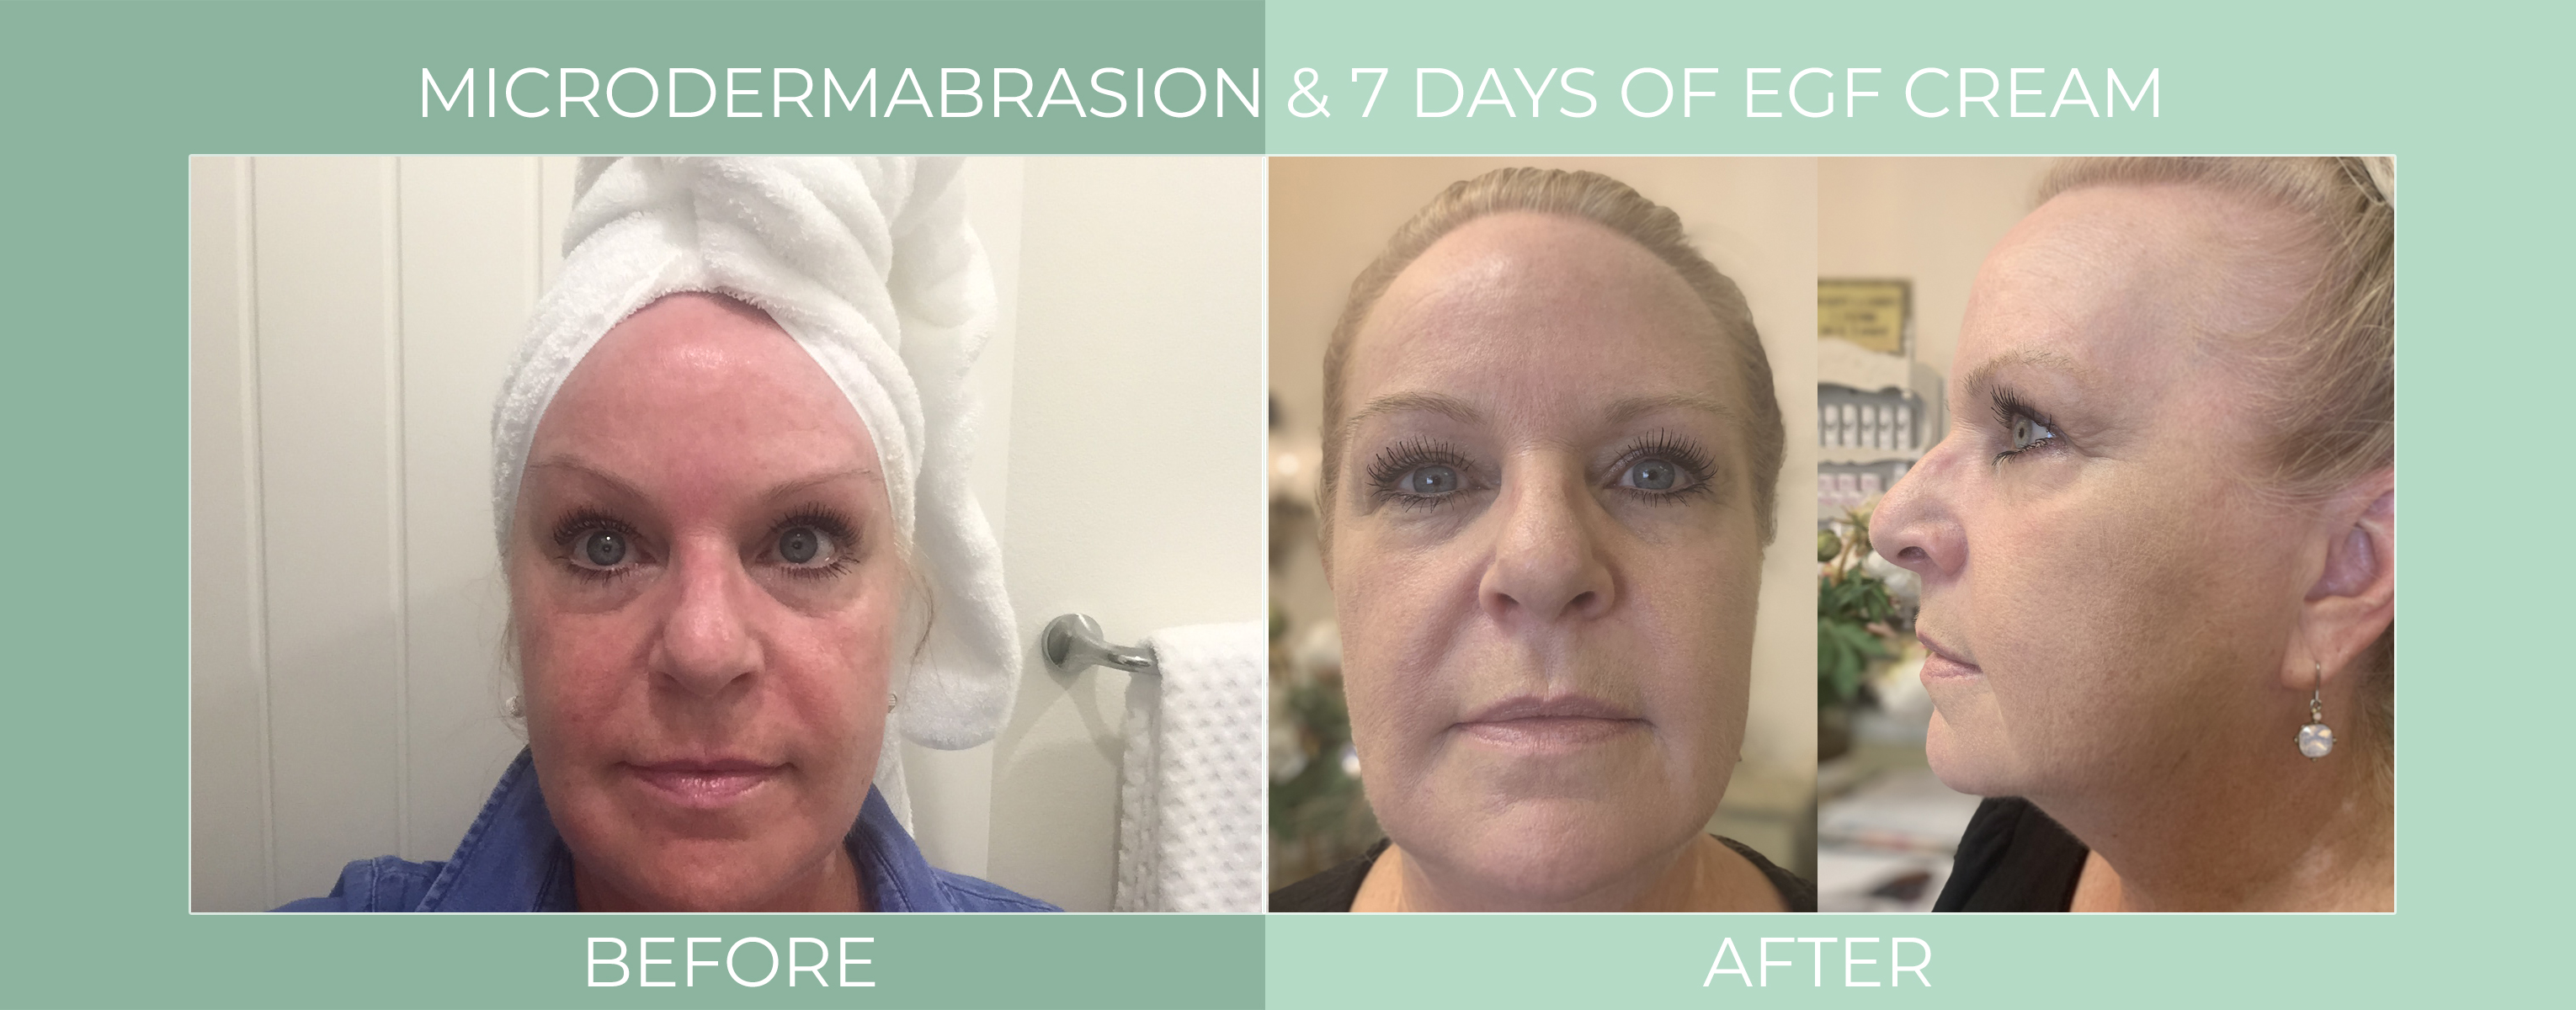 microdermabrasion-7-days-of-egf-cream-before-and-after.jpg